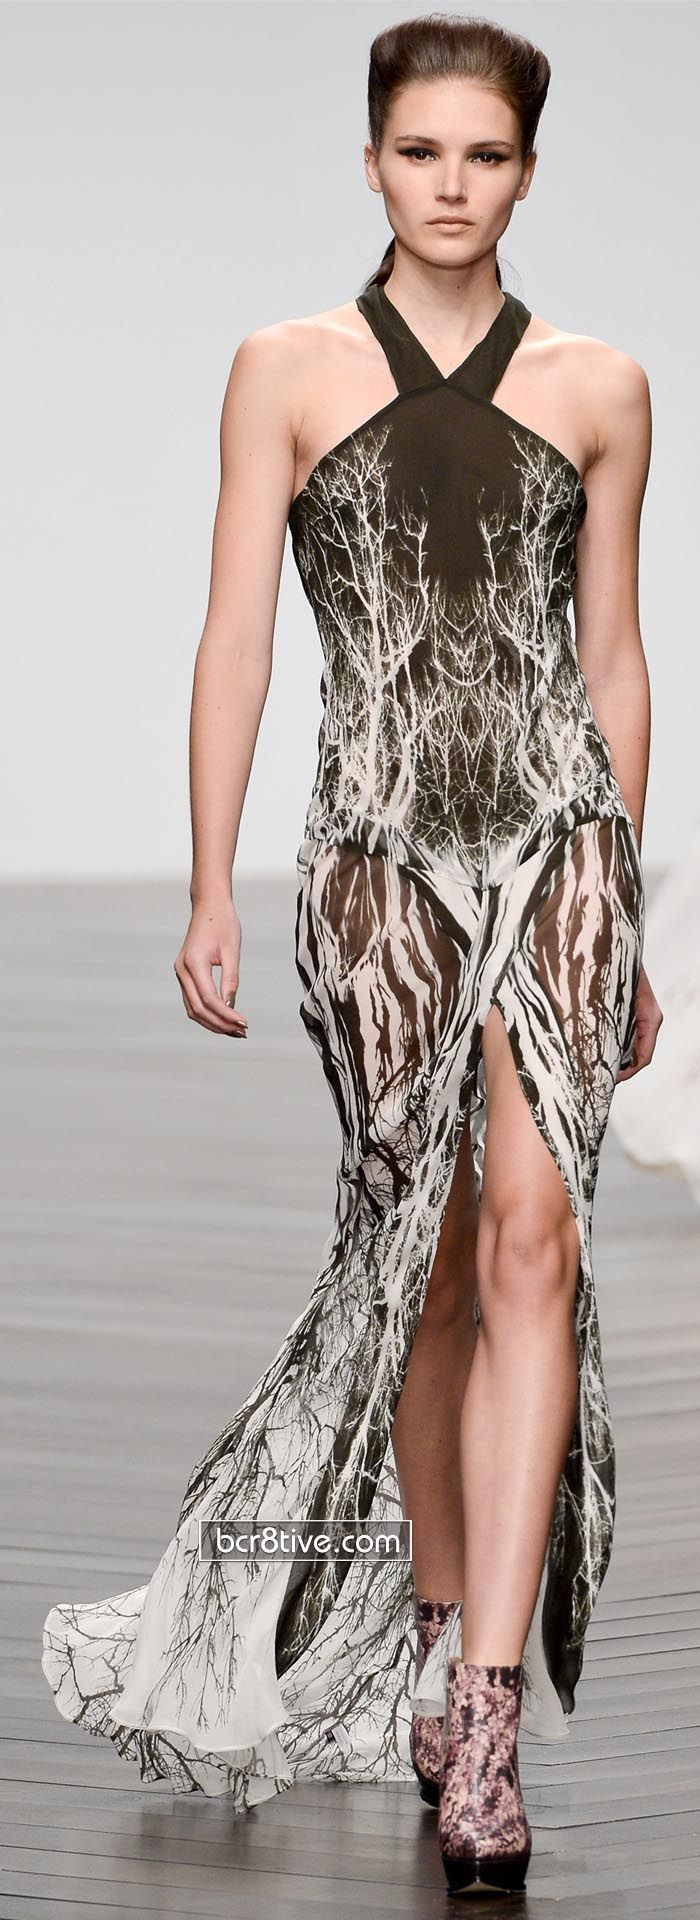 Maria Grachvogel FW 2013 - Tree Pattern Maxi Dress - http://www.mariagrachvogel.com/